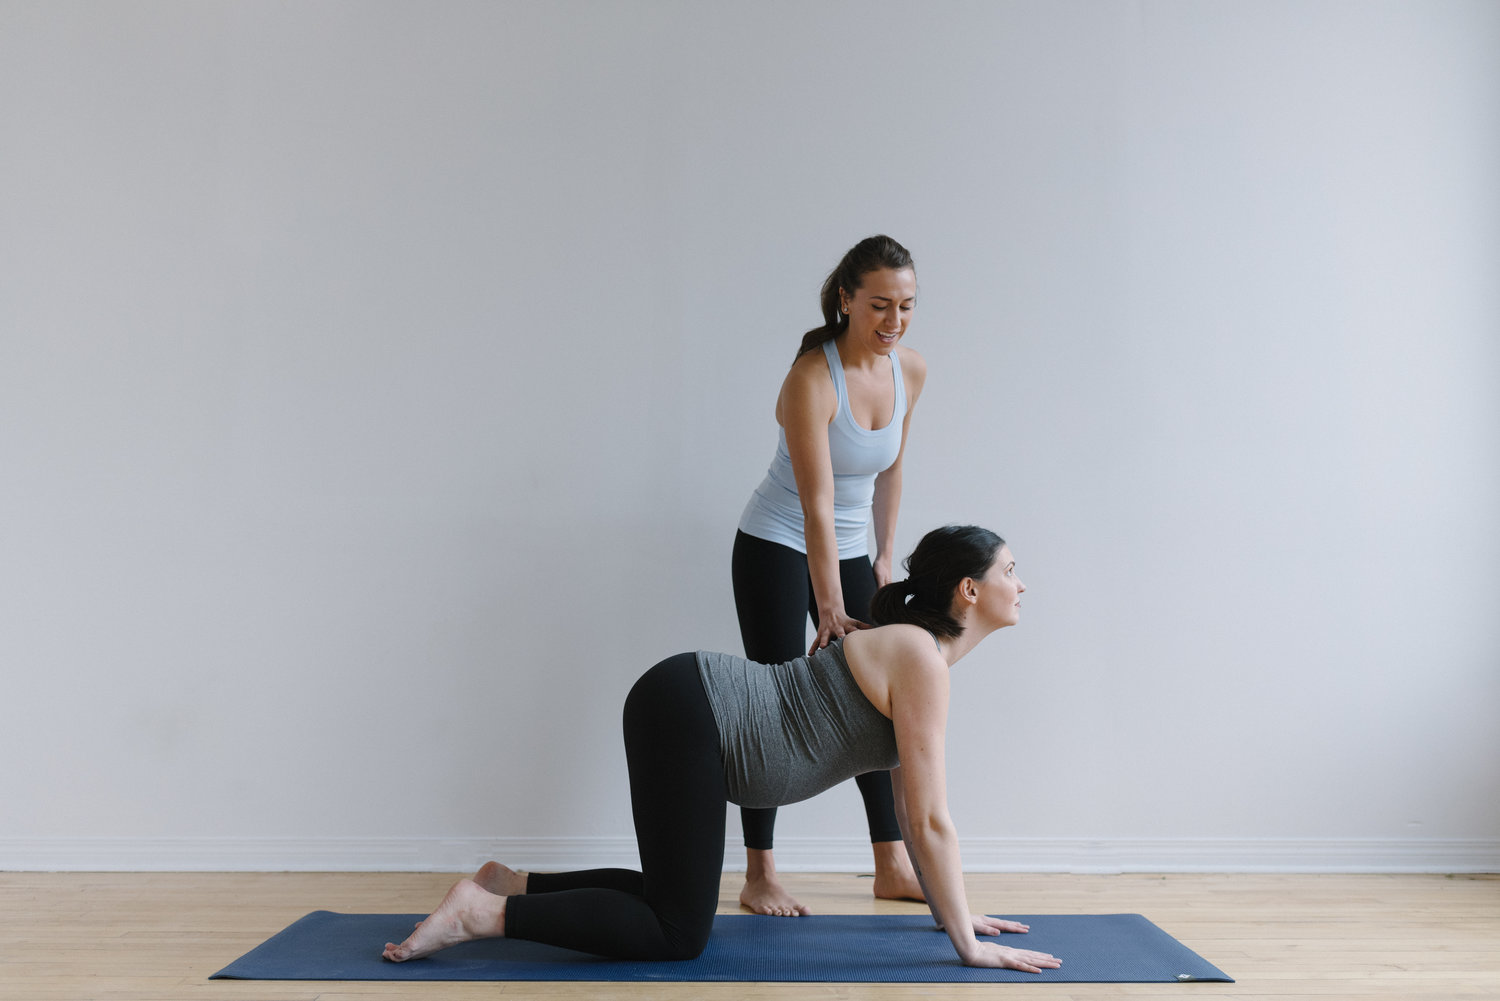 Prenatal+yoga+poses+for+every+trimester+_+Sam+D+Squire (5).jpeg